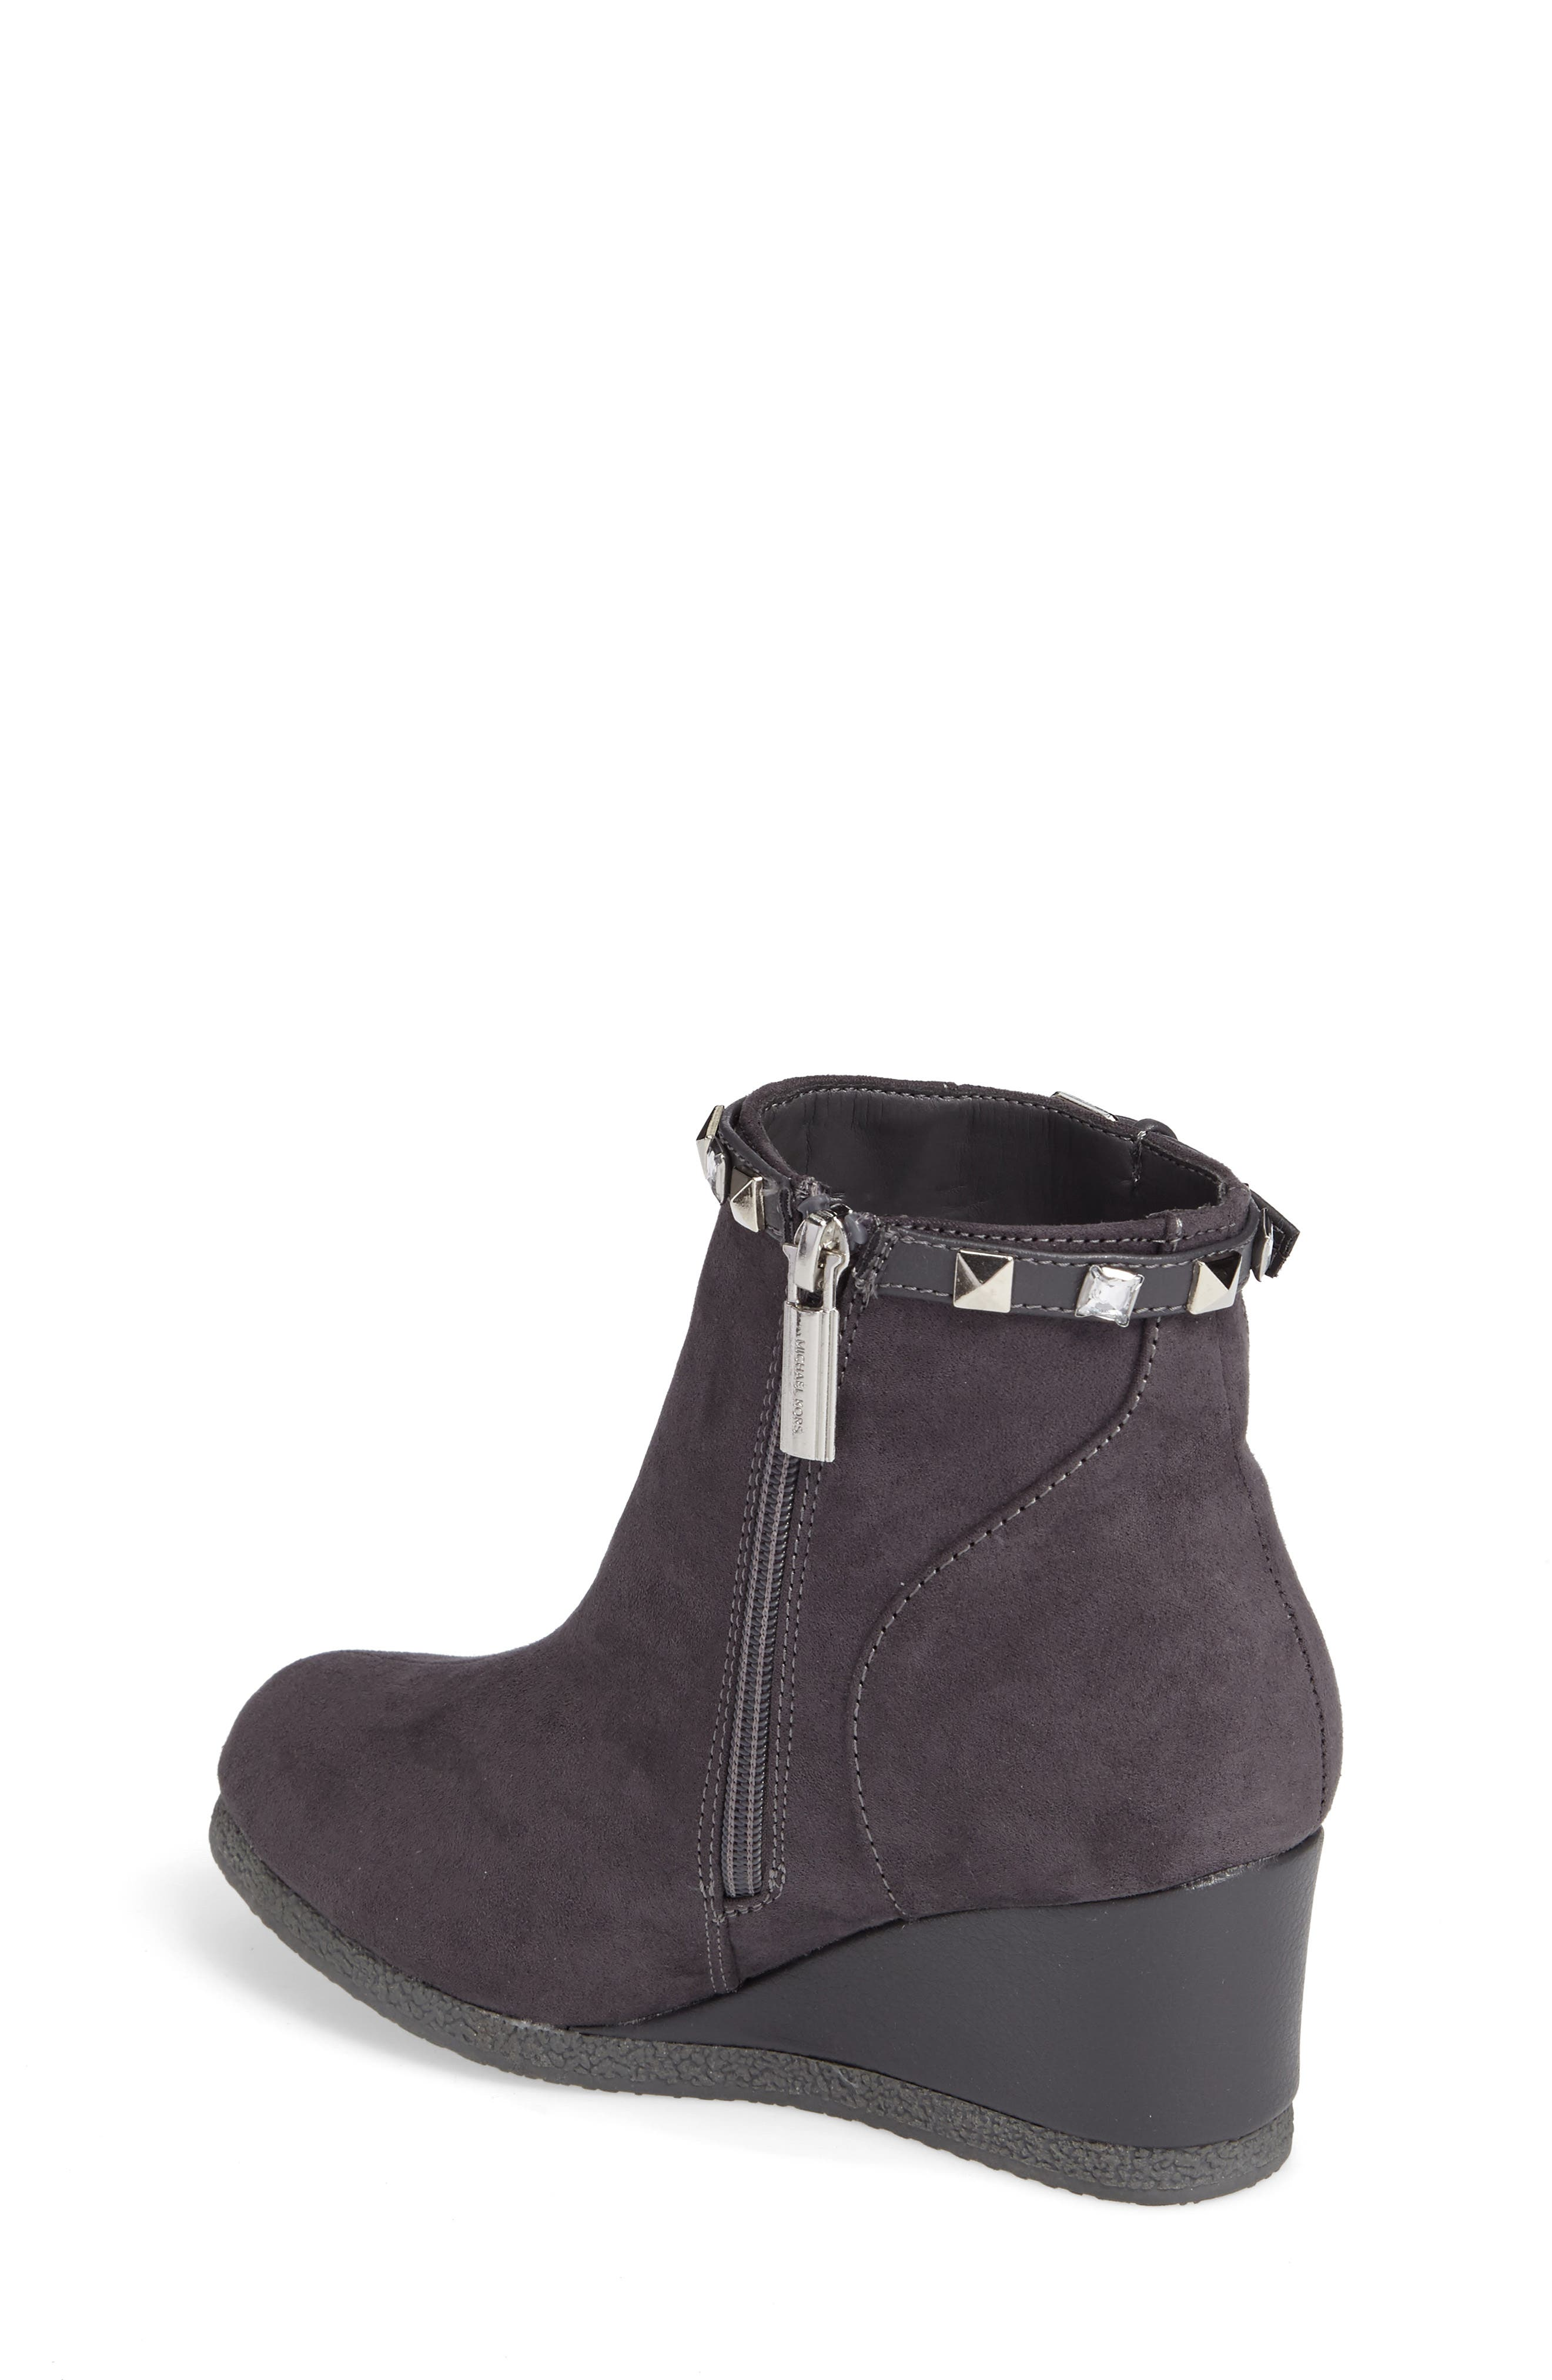 Cara Key Studded Wedge Bootie,                             Alternate thumbnail 4, color,